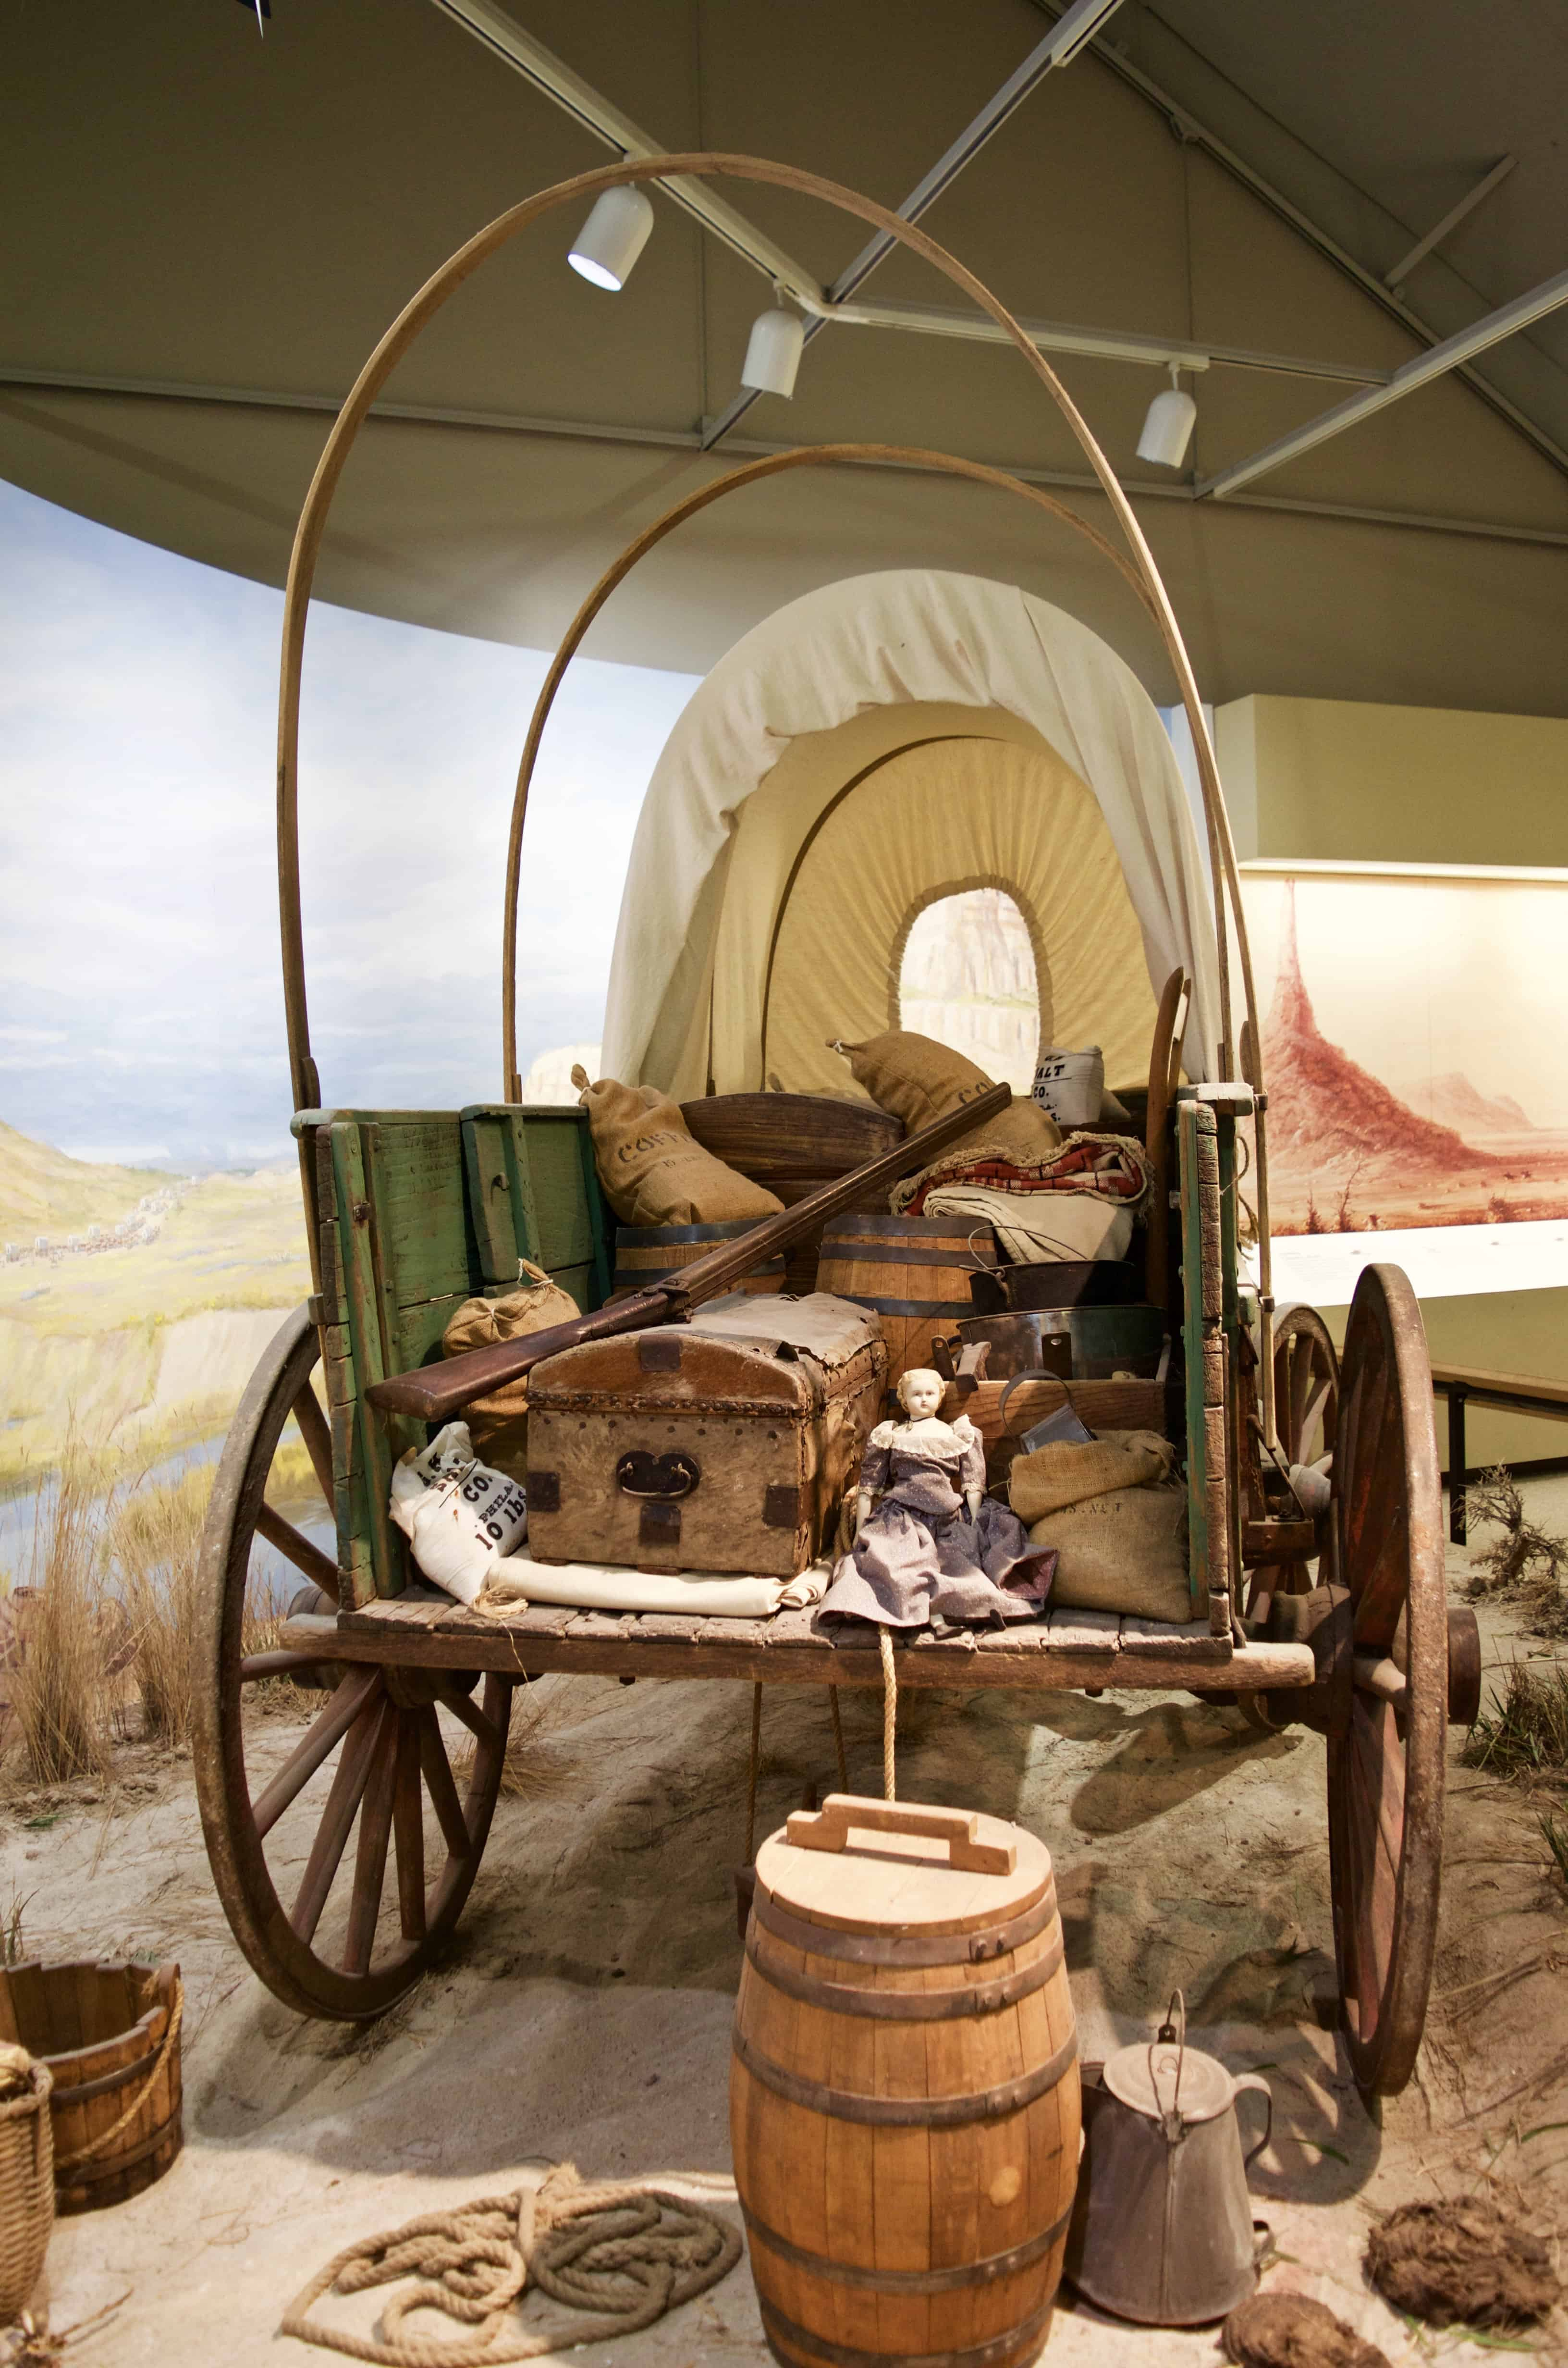 National Frontier Trails Museum Chasing History in the Kansas City Area in Missouri